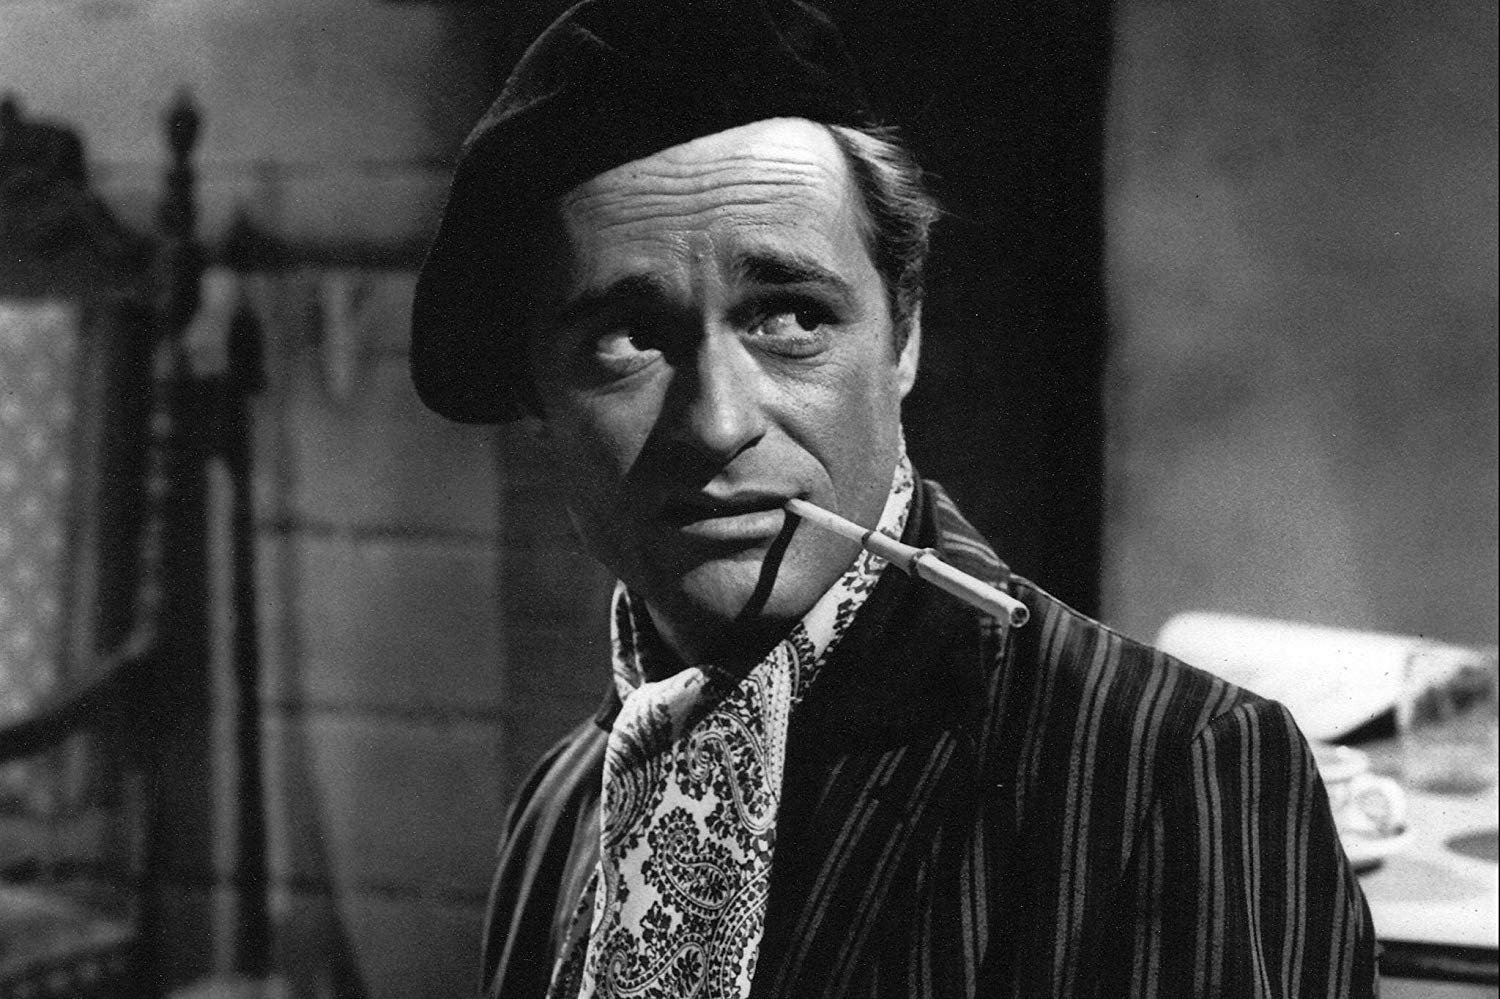 Dick Miller as Walter Paisley in A Bucket of Blood (1959)